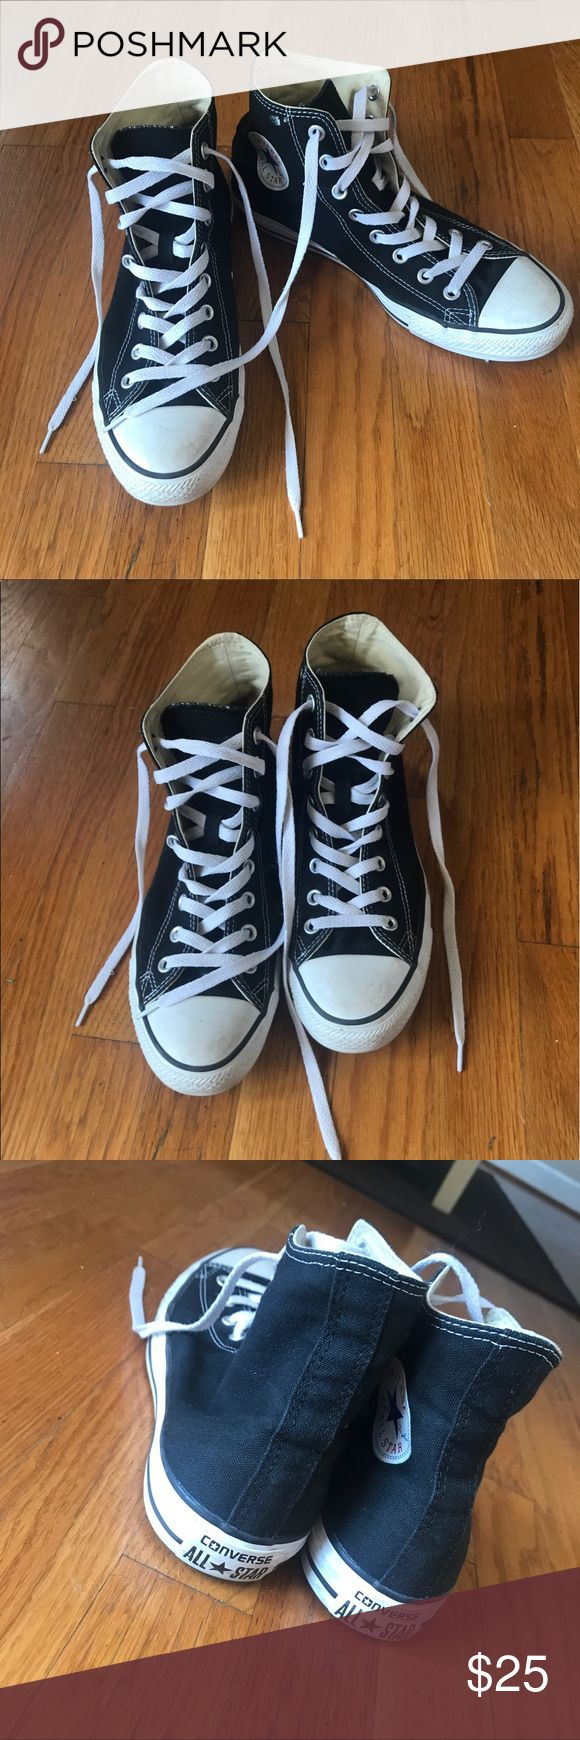 Black High Top Chuck Taylor Converse Only flaw is one of the metal covers on the shoe lace holes is a little loose! Retail $55 Converse Shoes Sneakers